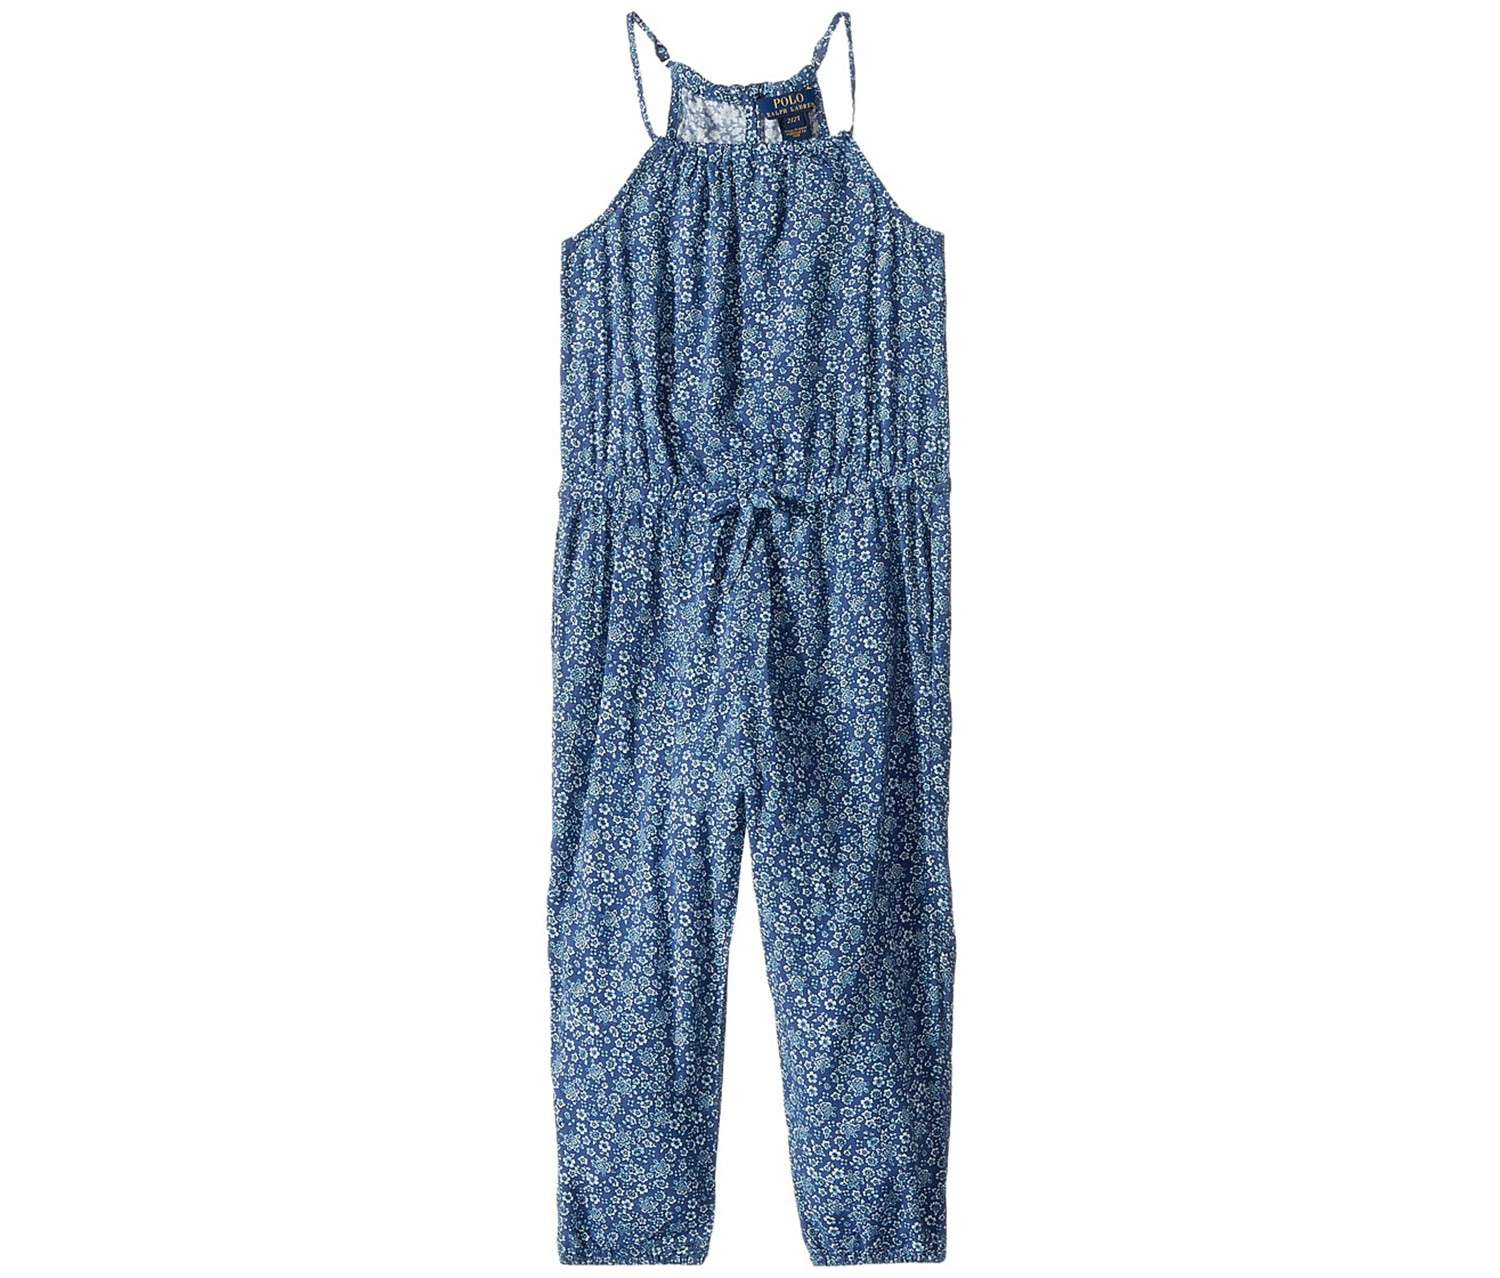 fb9484880 ... Polo Ralph Lauren Gil's Rayon Floral Romper, Blue. Super Price · Colors  of Summer. 18/925/311656381001.jpg